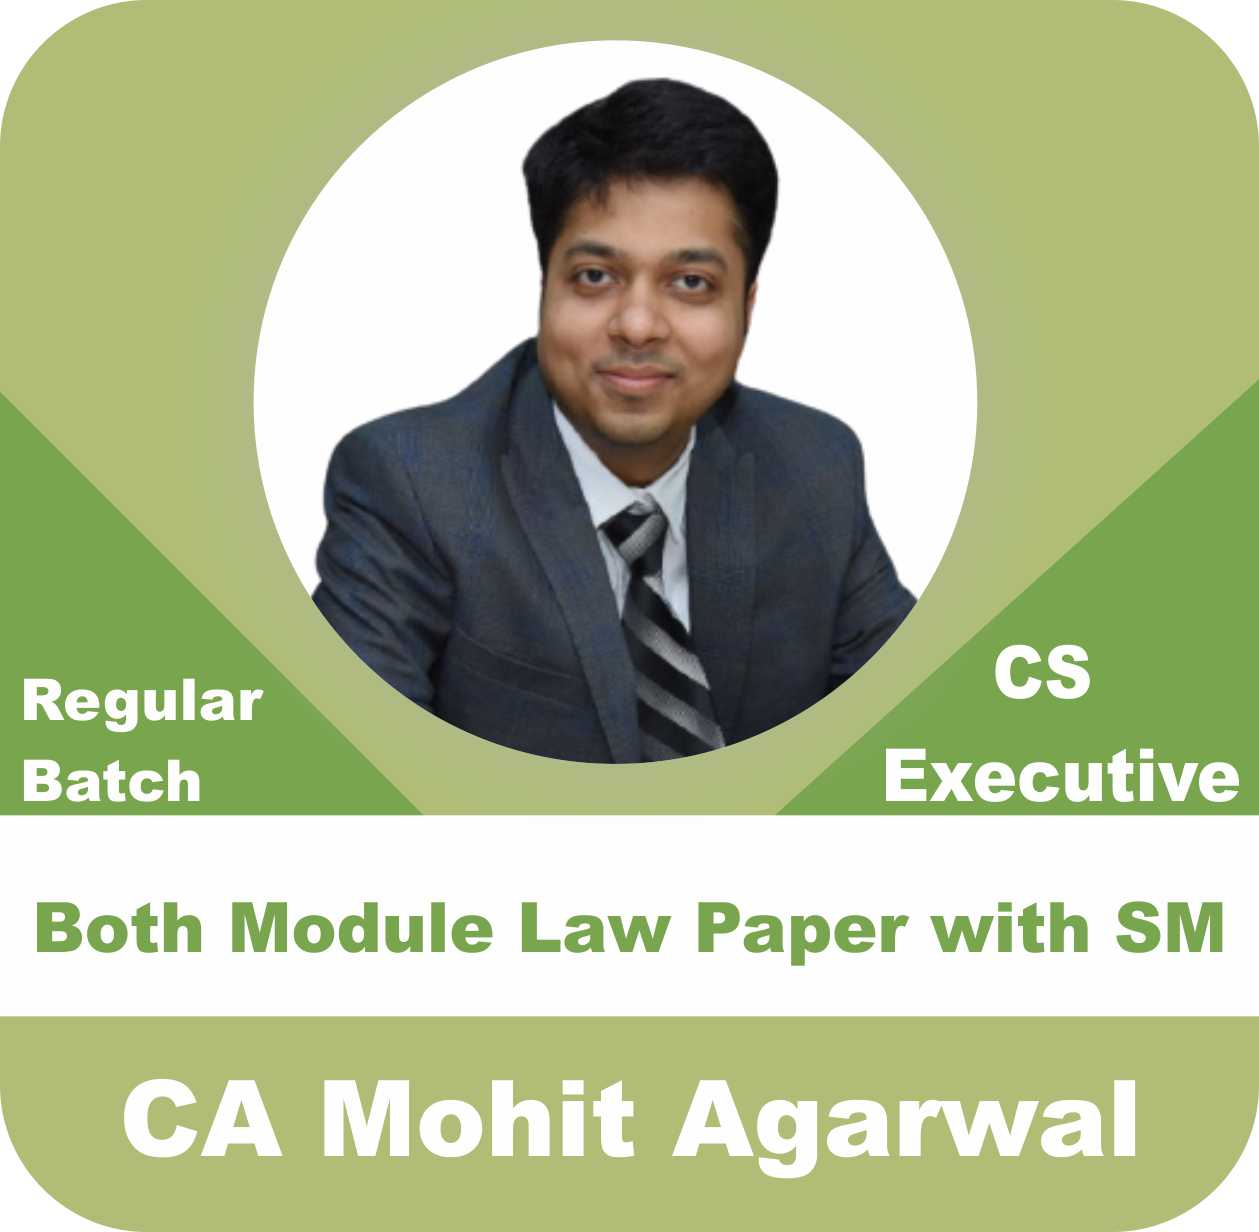 Both Module 5 Law Paper with SM Regular Batch Combo